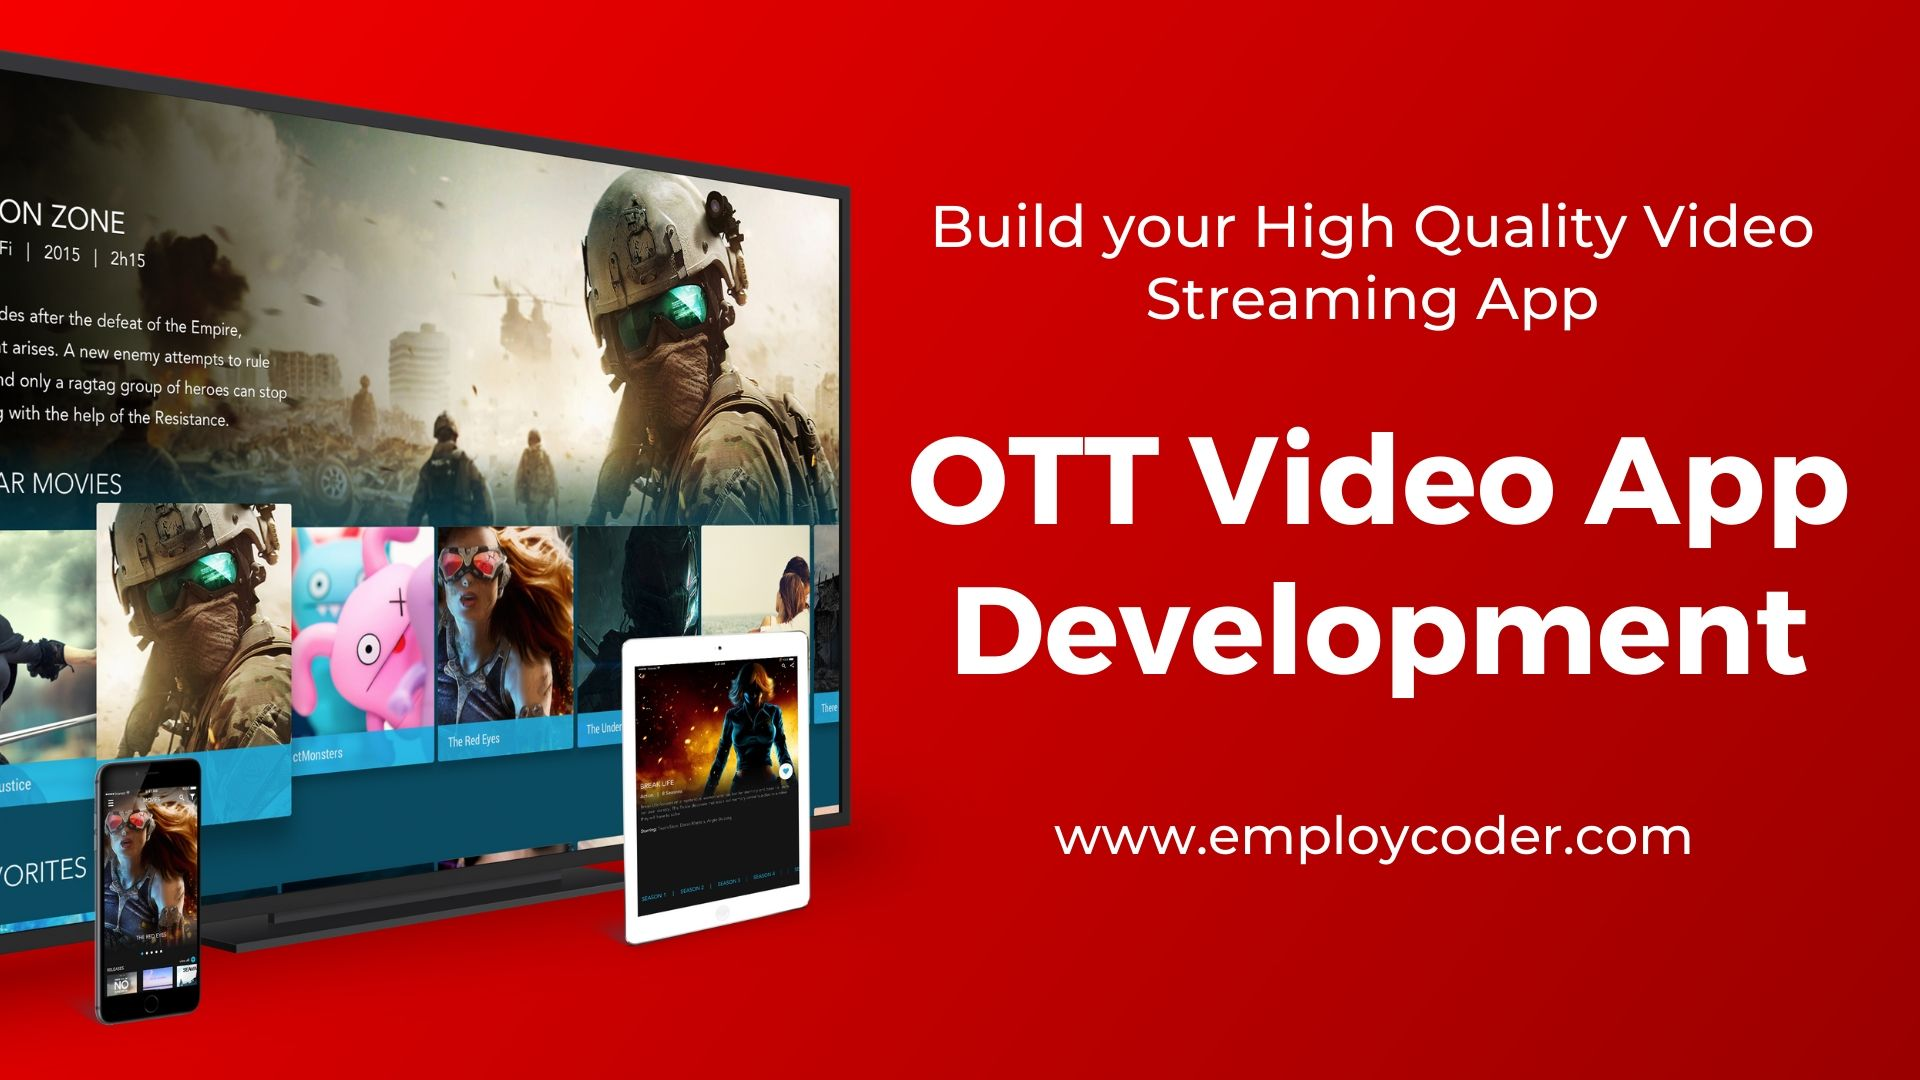 OTT Video App Development Company - Employcoder